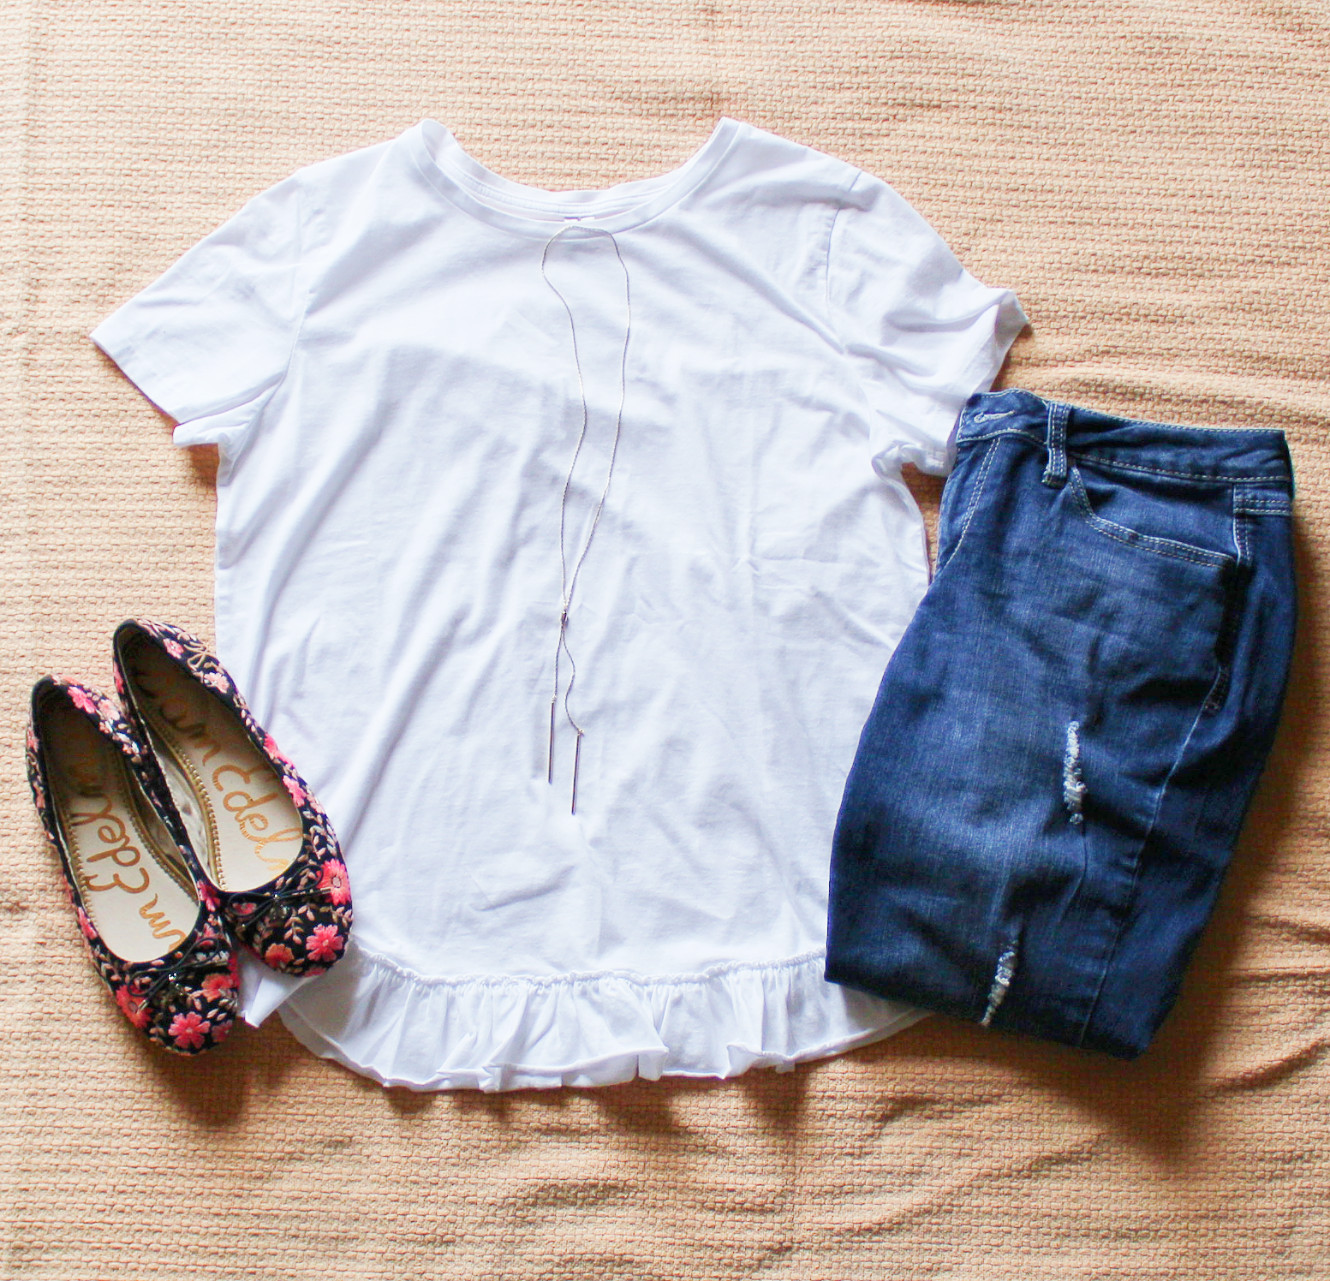 White Tee And Floral Flats With Jeans